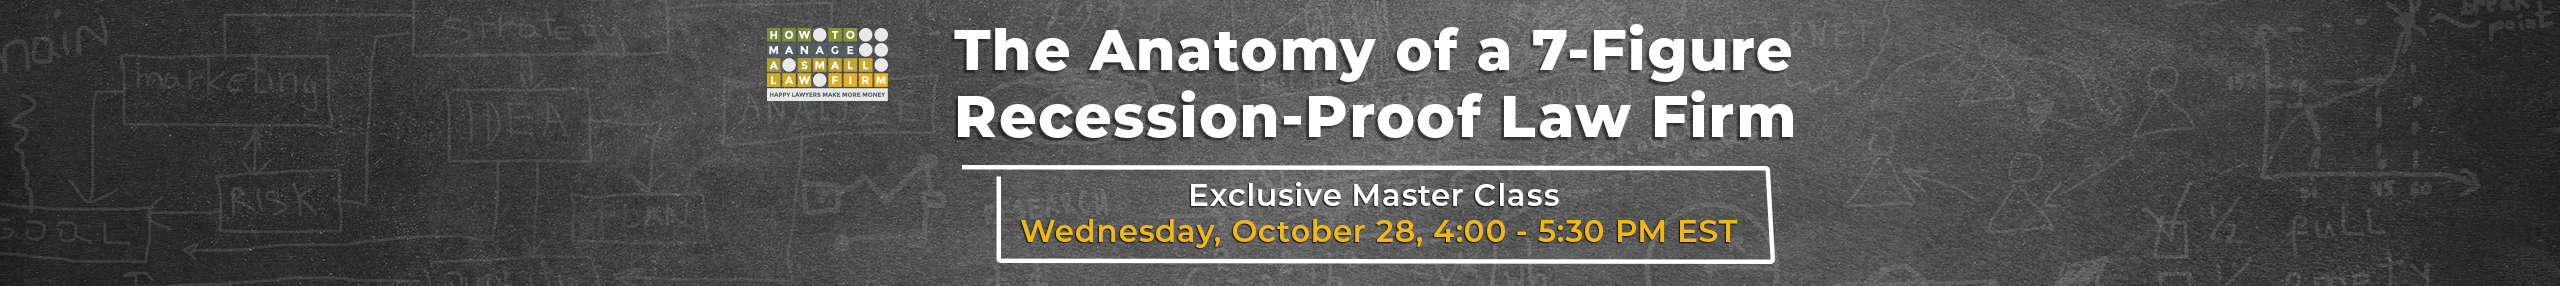 the anatomy of a 7-figure recession-proof law firm exclusive master class webinar wednesday october 28 4:00pm - 5:30pm ET